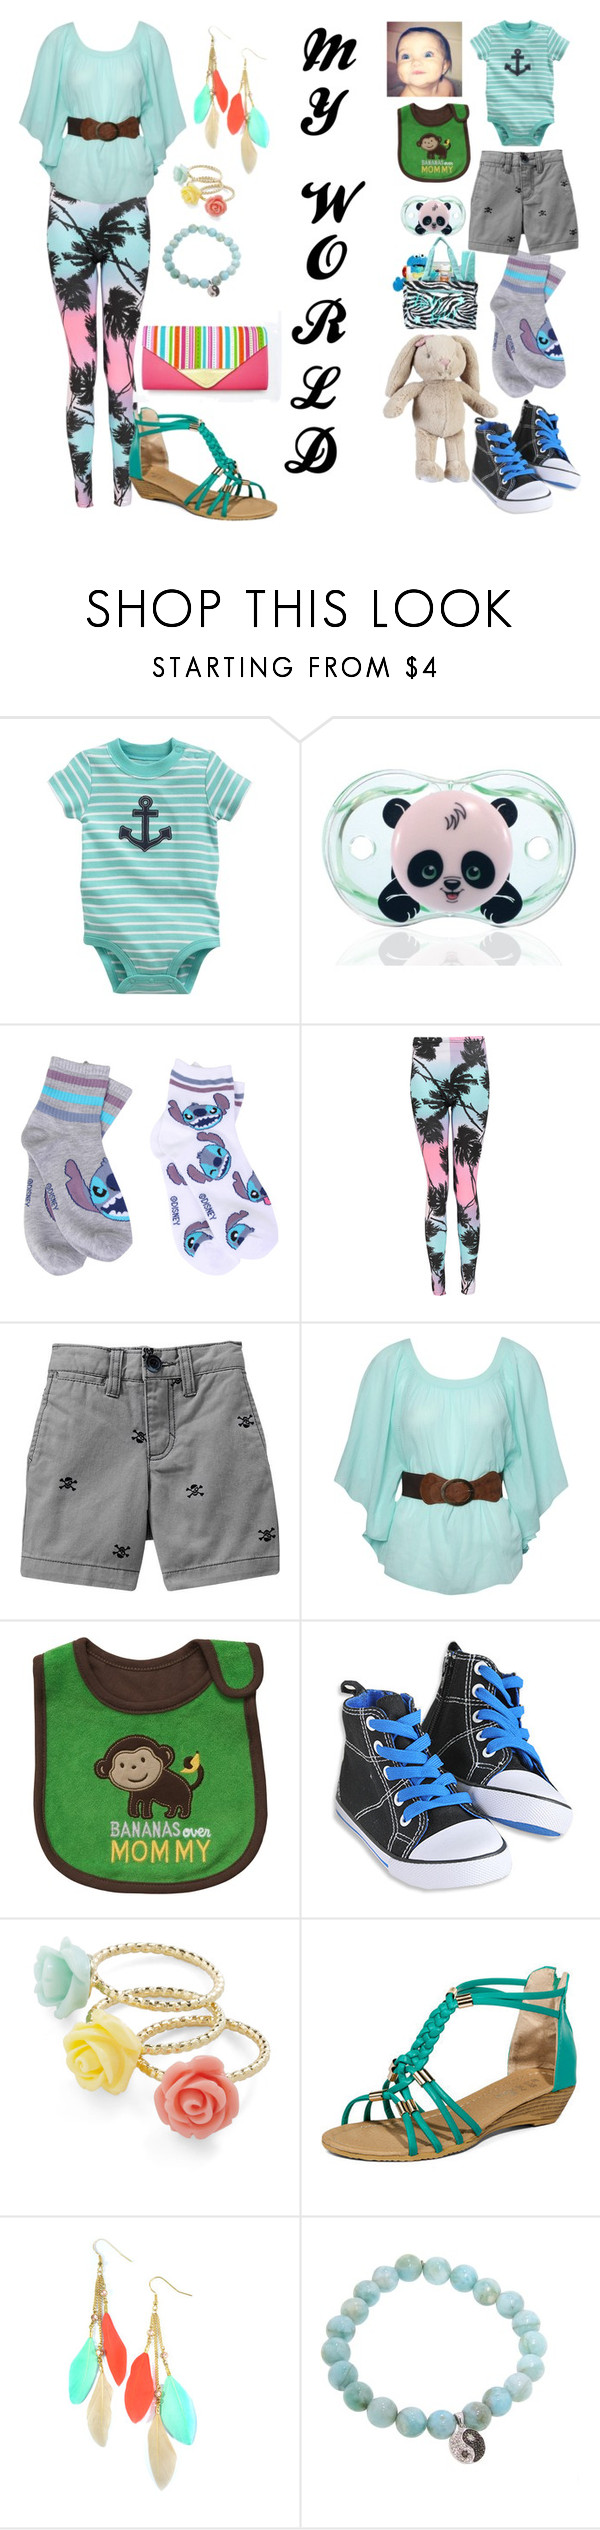 """Mother and son!"" by sylviac360 ❤ liked on Polyvore featuring Carter's, Disney, Boohoo, Old Navy, Jane Norman, Kerr®, yeswalker and Sydney Evan"